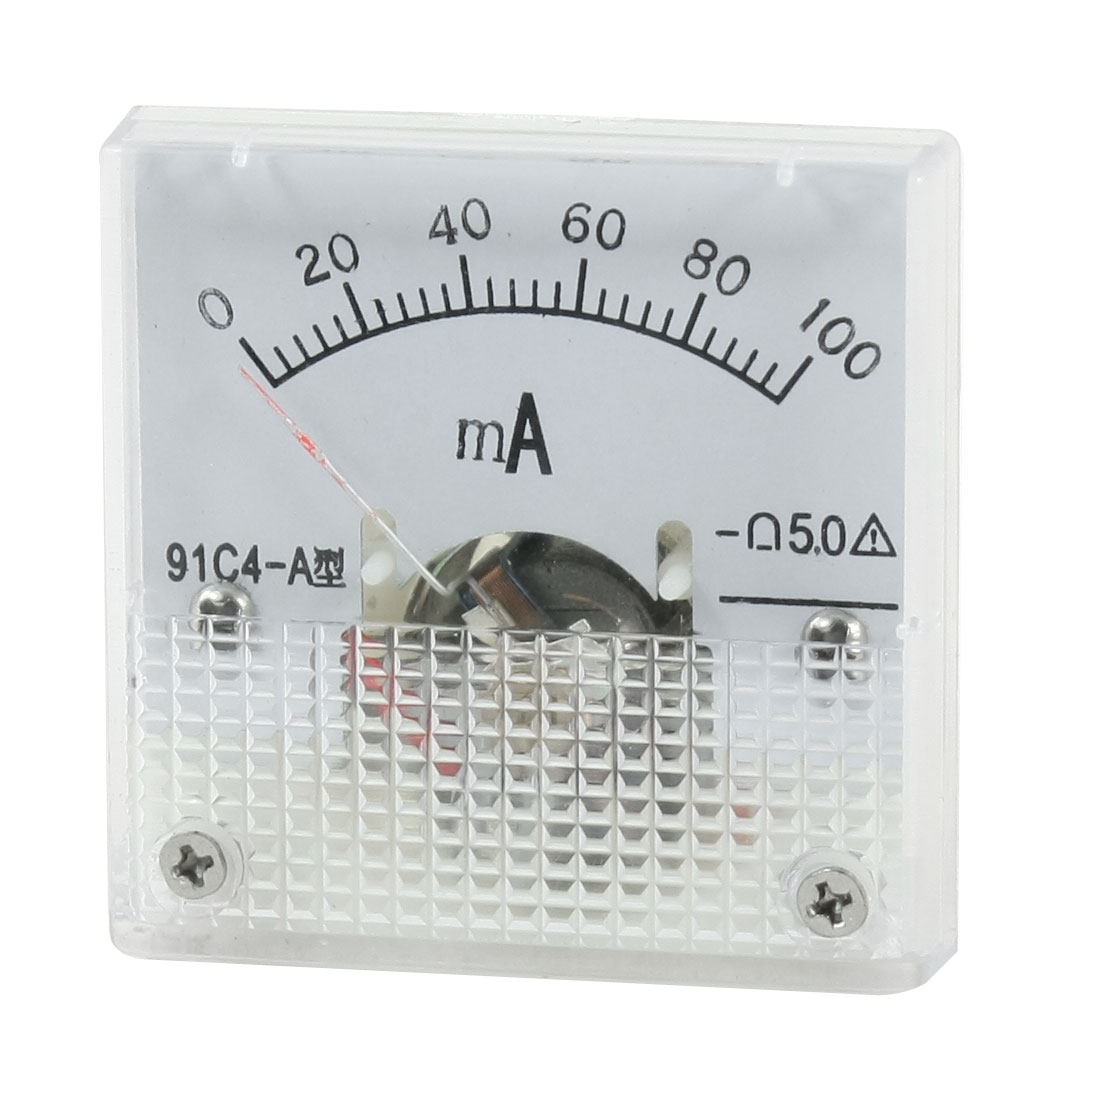 Plastic Shell DC 0-100mA Current Analog Panel Meter Tester Ammeter